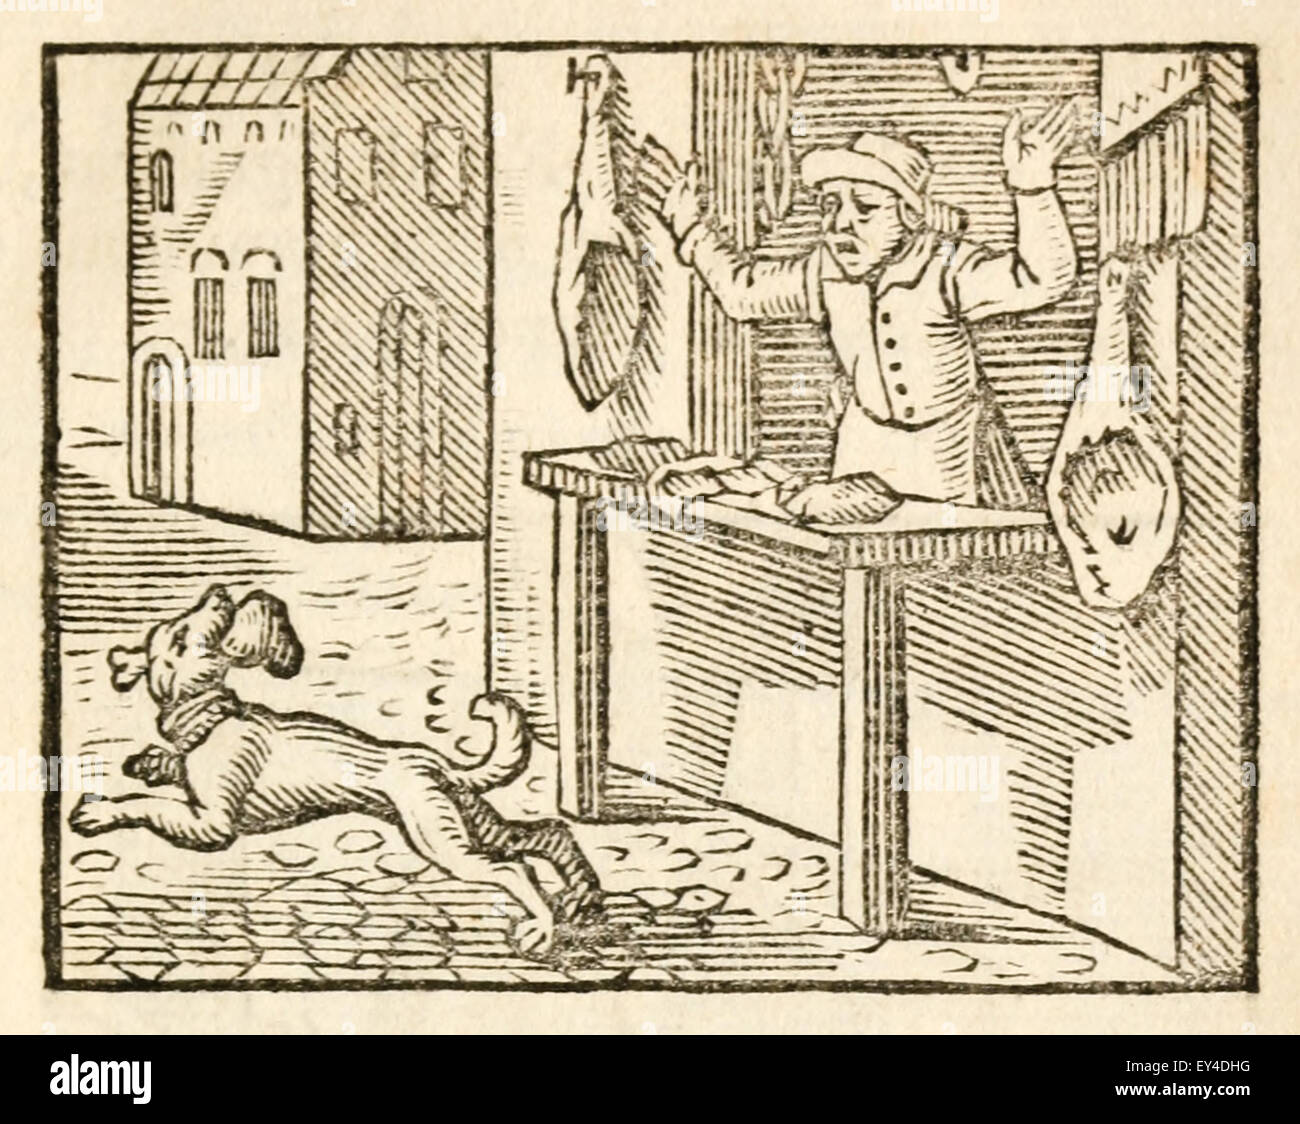 'The Dog and the Butcher' fable by Aesop (circa 600BC). A dog steals a heart from a butcher who shouts'Hey, - Stock Image